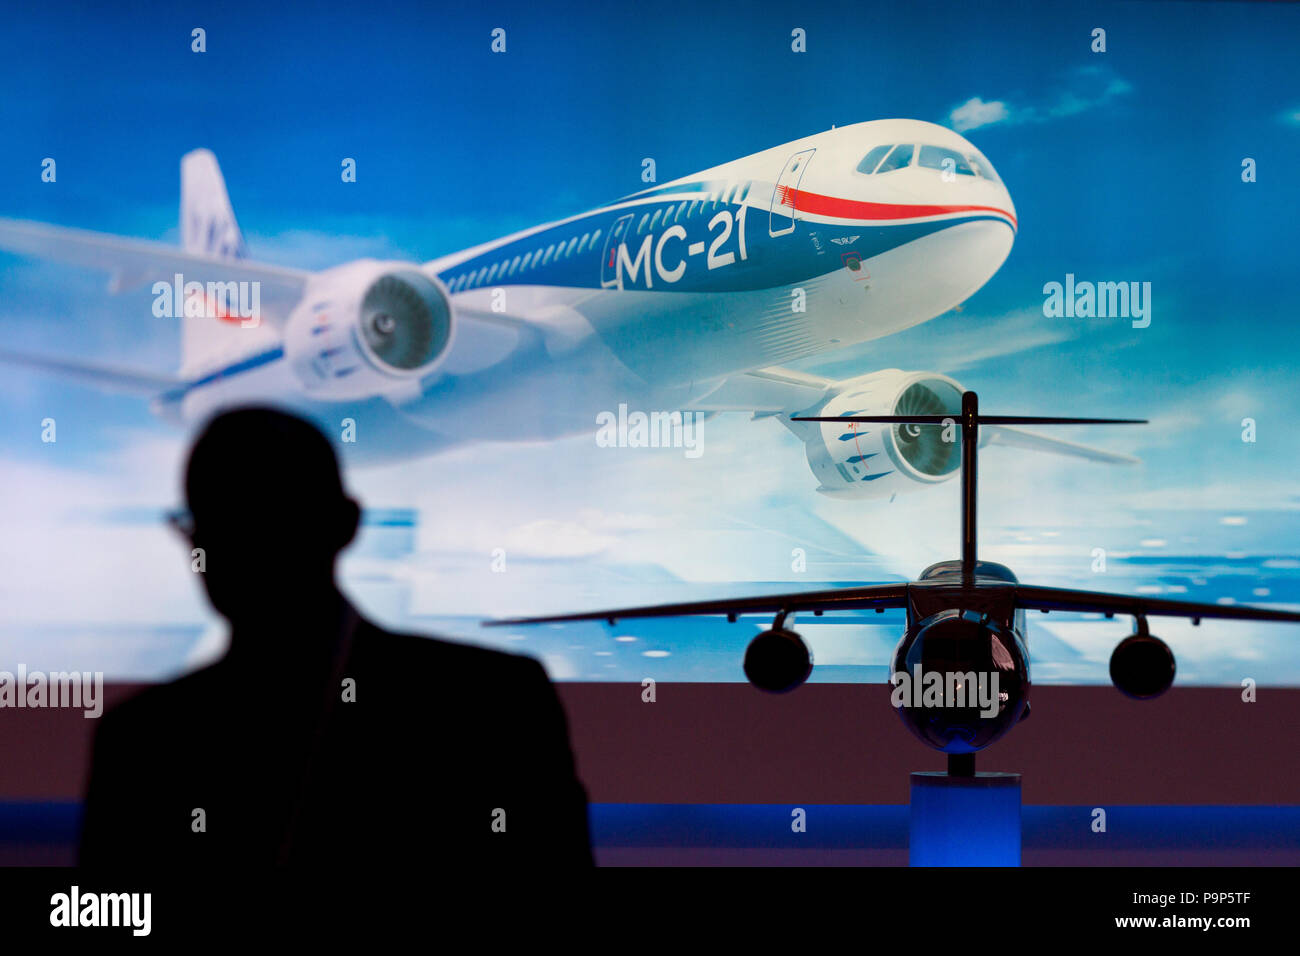 A visitor to the show silhouetted against the image of Irkut MC-21 civil aircraft at Farnborough International Airshow, UK Stock Photo